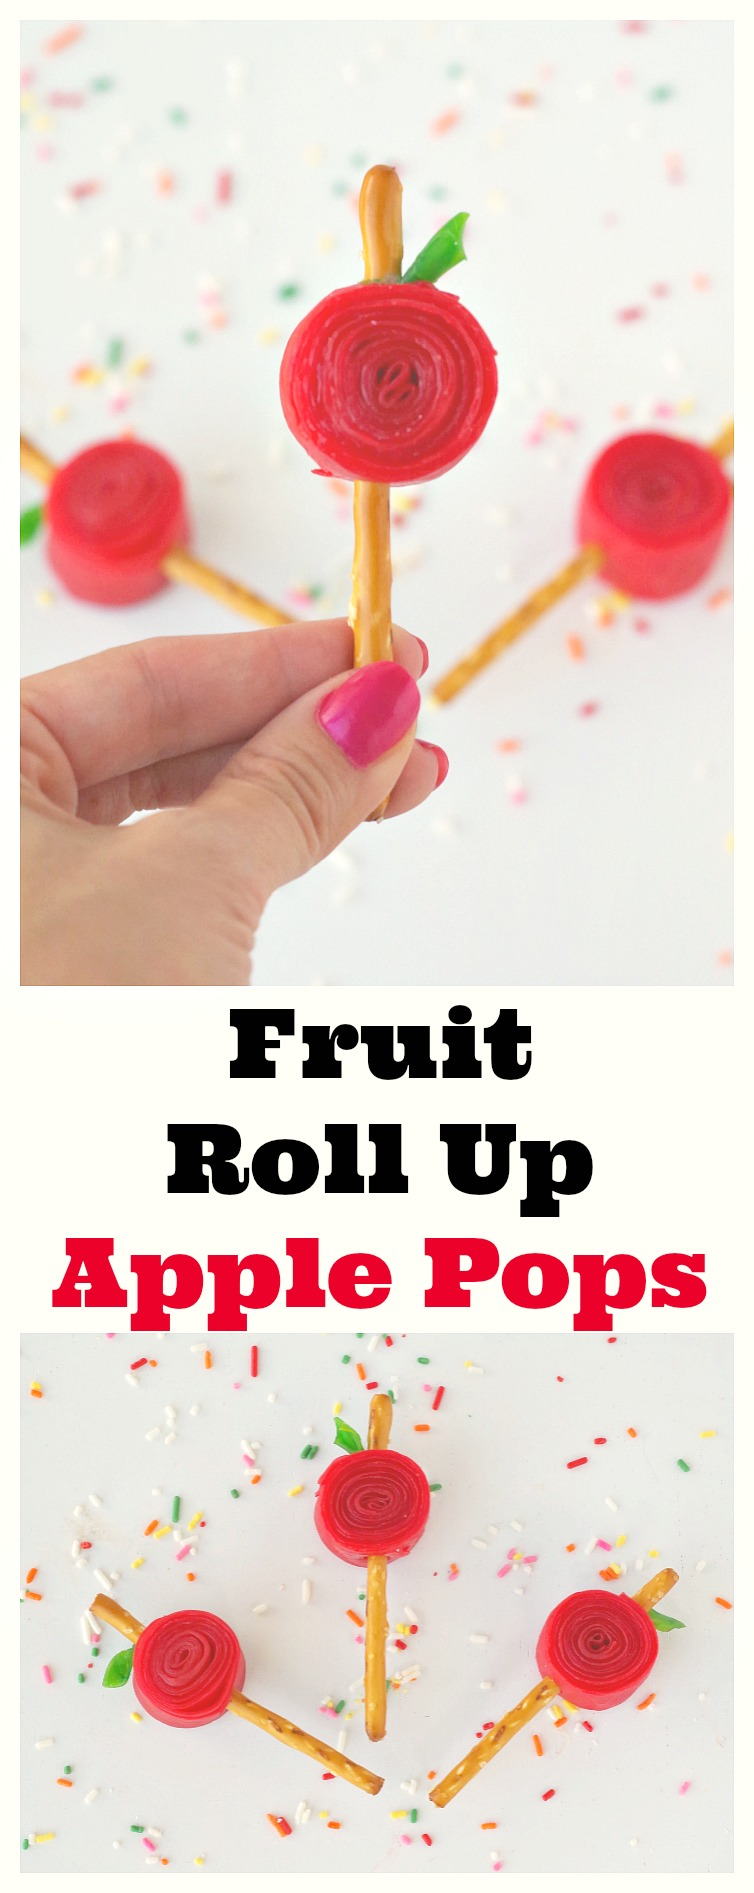 Fruit Roll Up Apple Pops! These simple pops made with fruit roll ups and pretzels are perfect for school lunches or after school snacks.